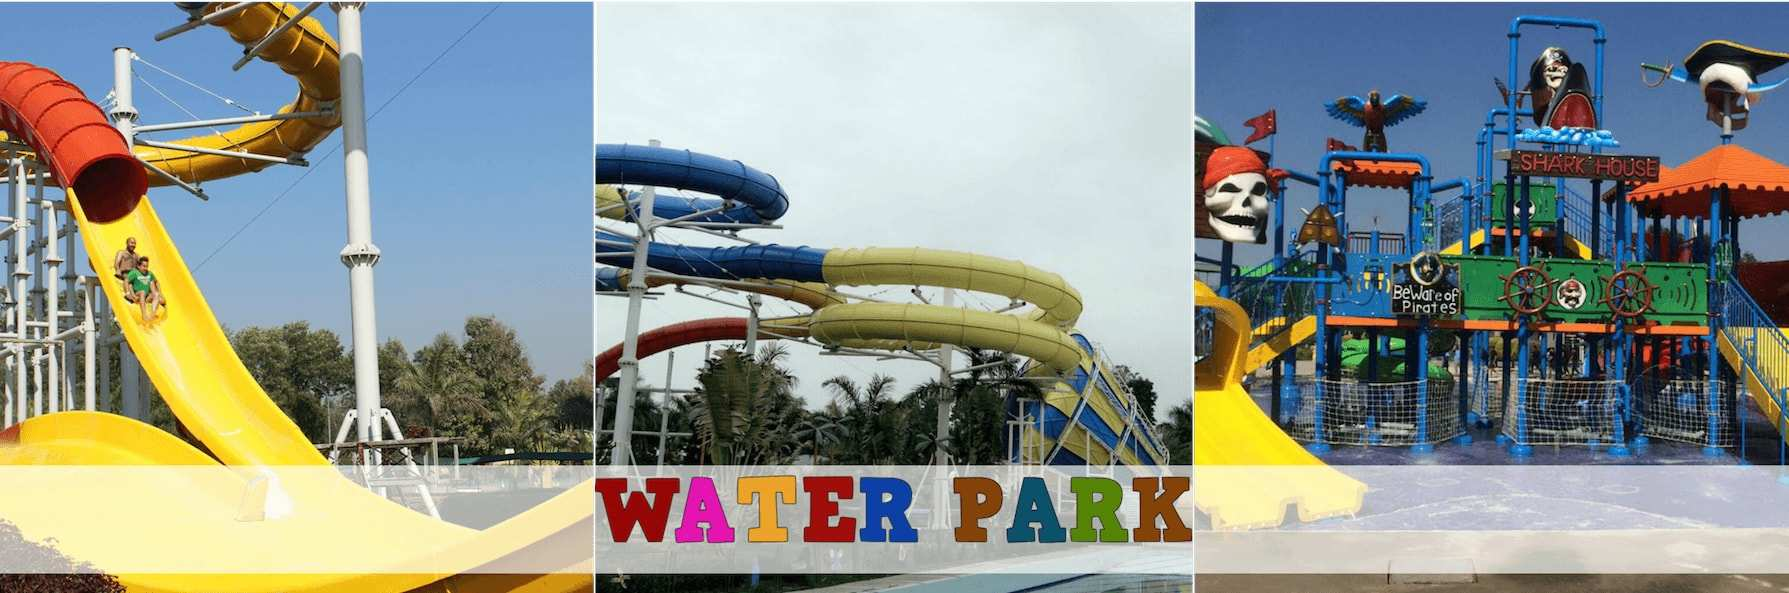 Water-park-Funcity-Chandigarh.jpg